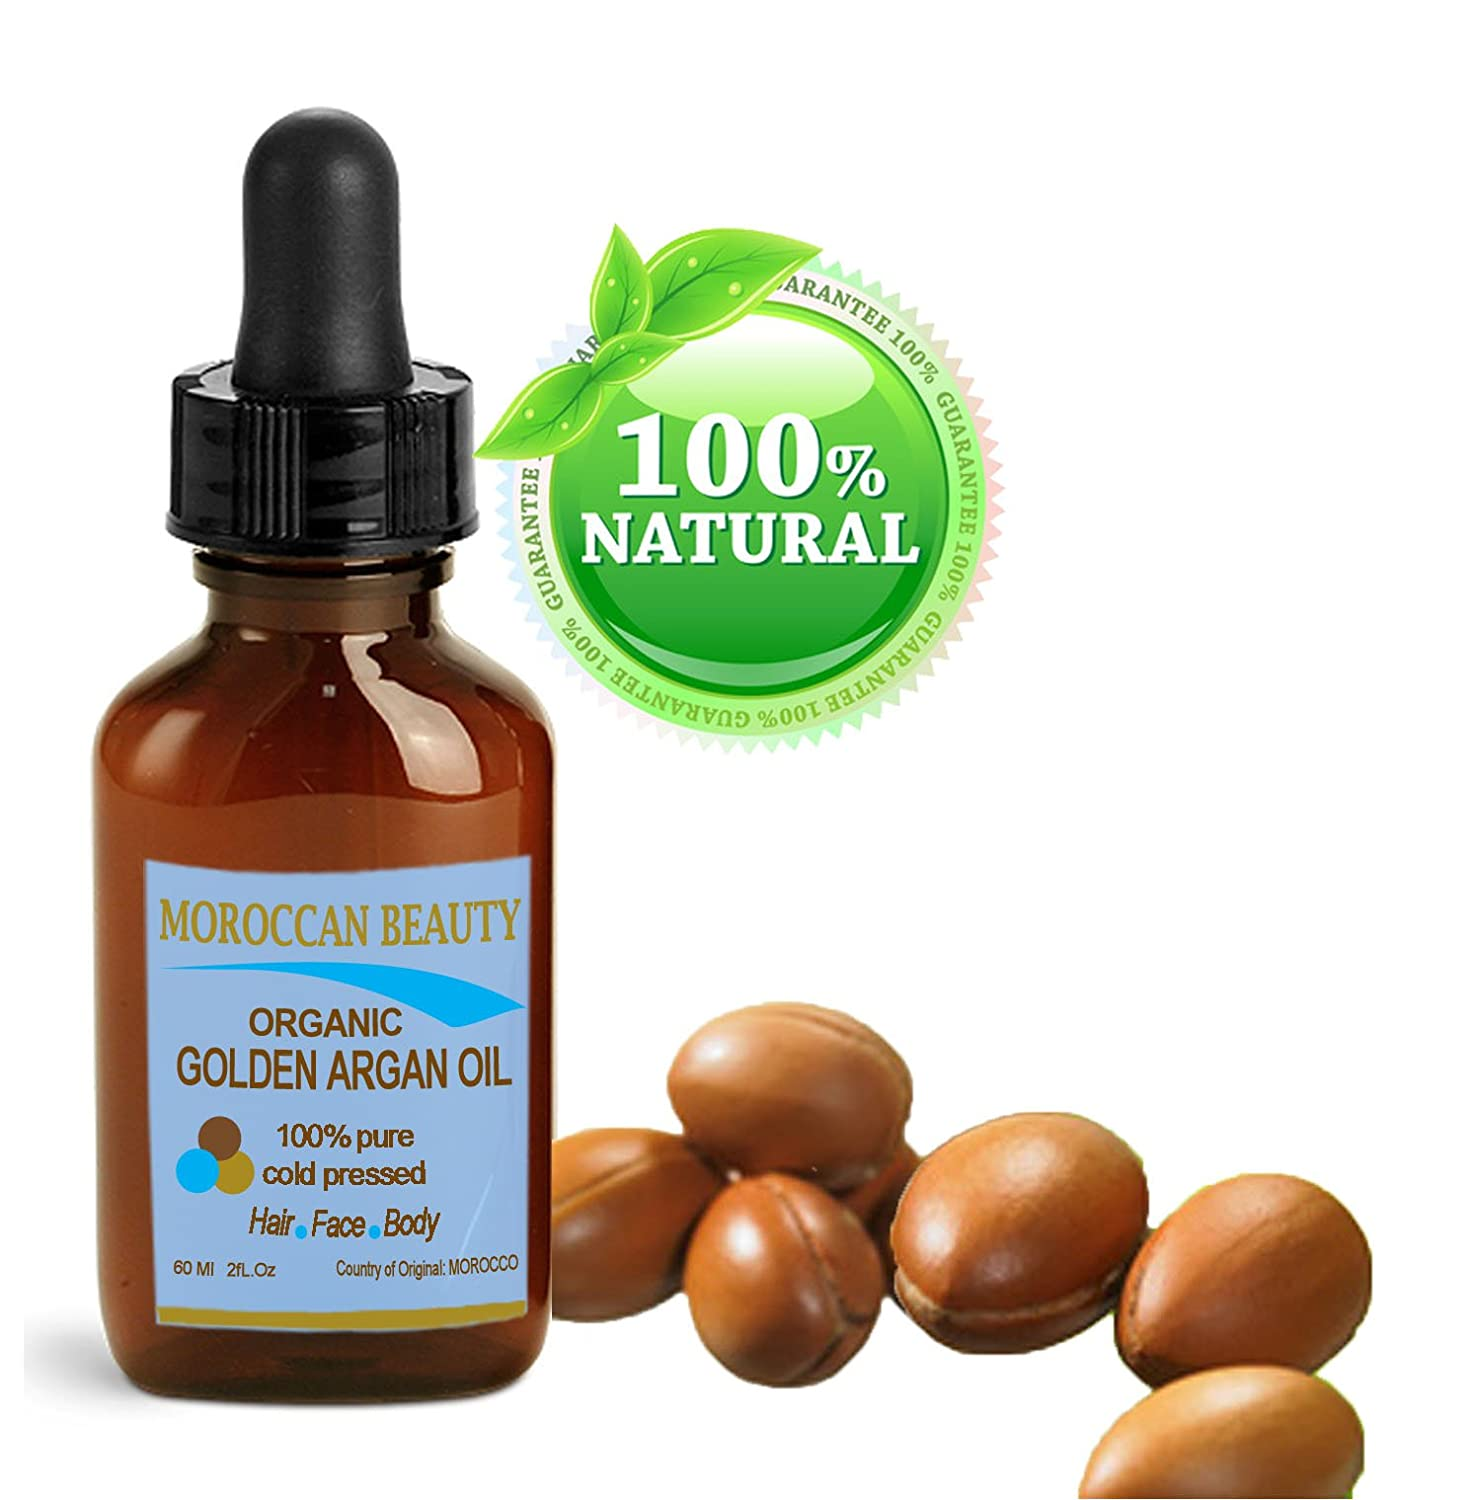 Botanical Beauty Organic Golden Argan Oil, 100% Pure/ Natural, For Face, Hair, Nails And Body, 1oz-30ml Moroccan Beauty